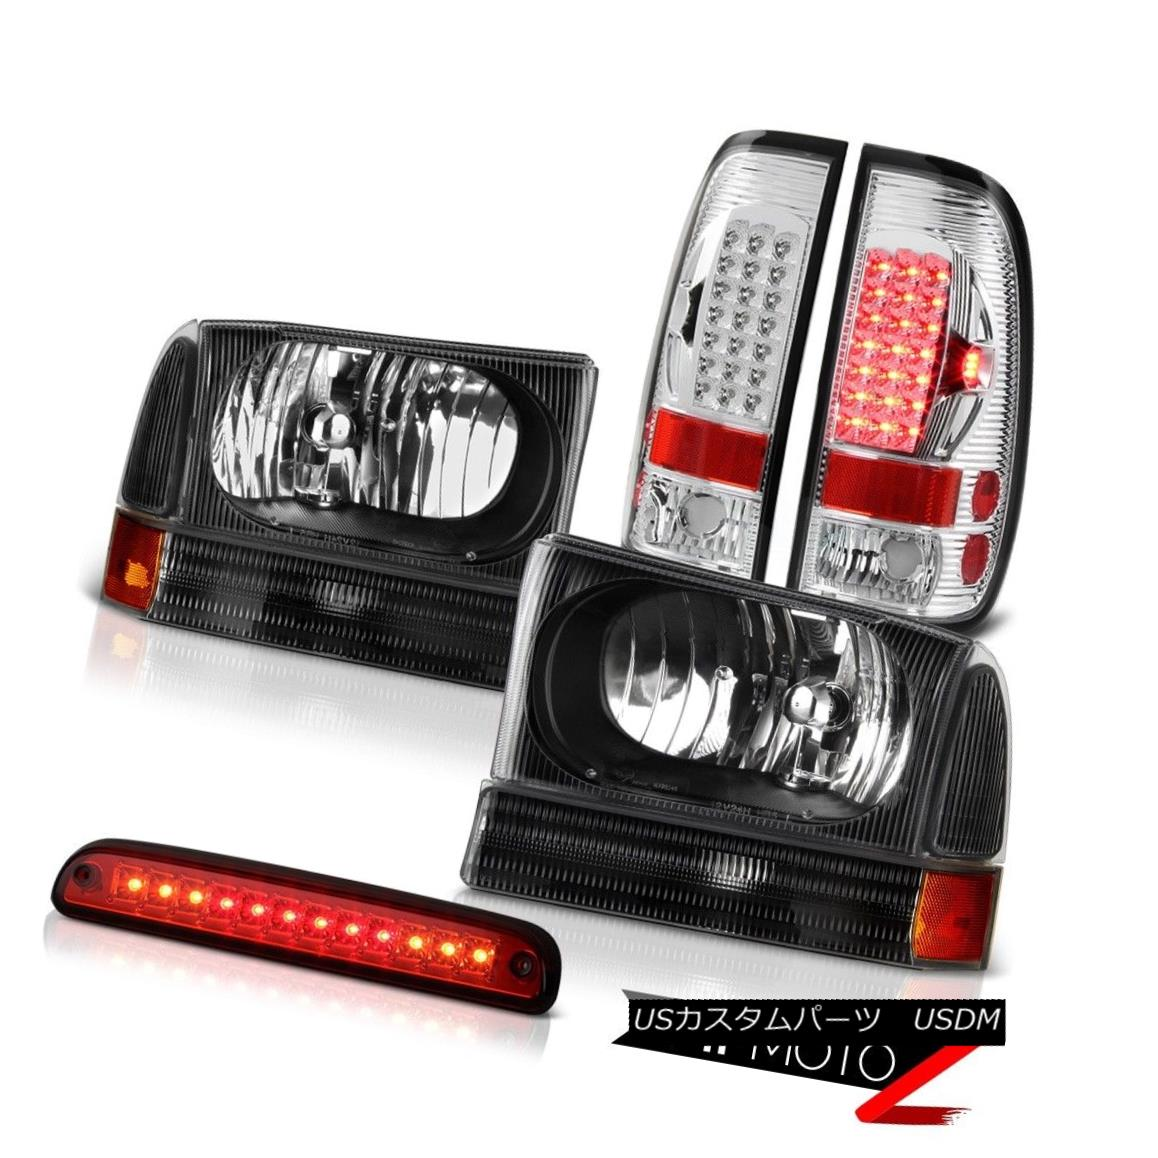 Ford 99-04 Mustang Black LED Halo Projector Headlights+Smoke Tail Brake Lamps